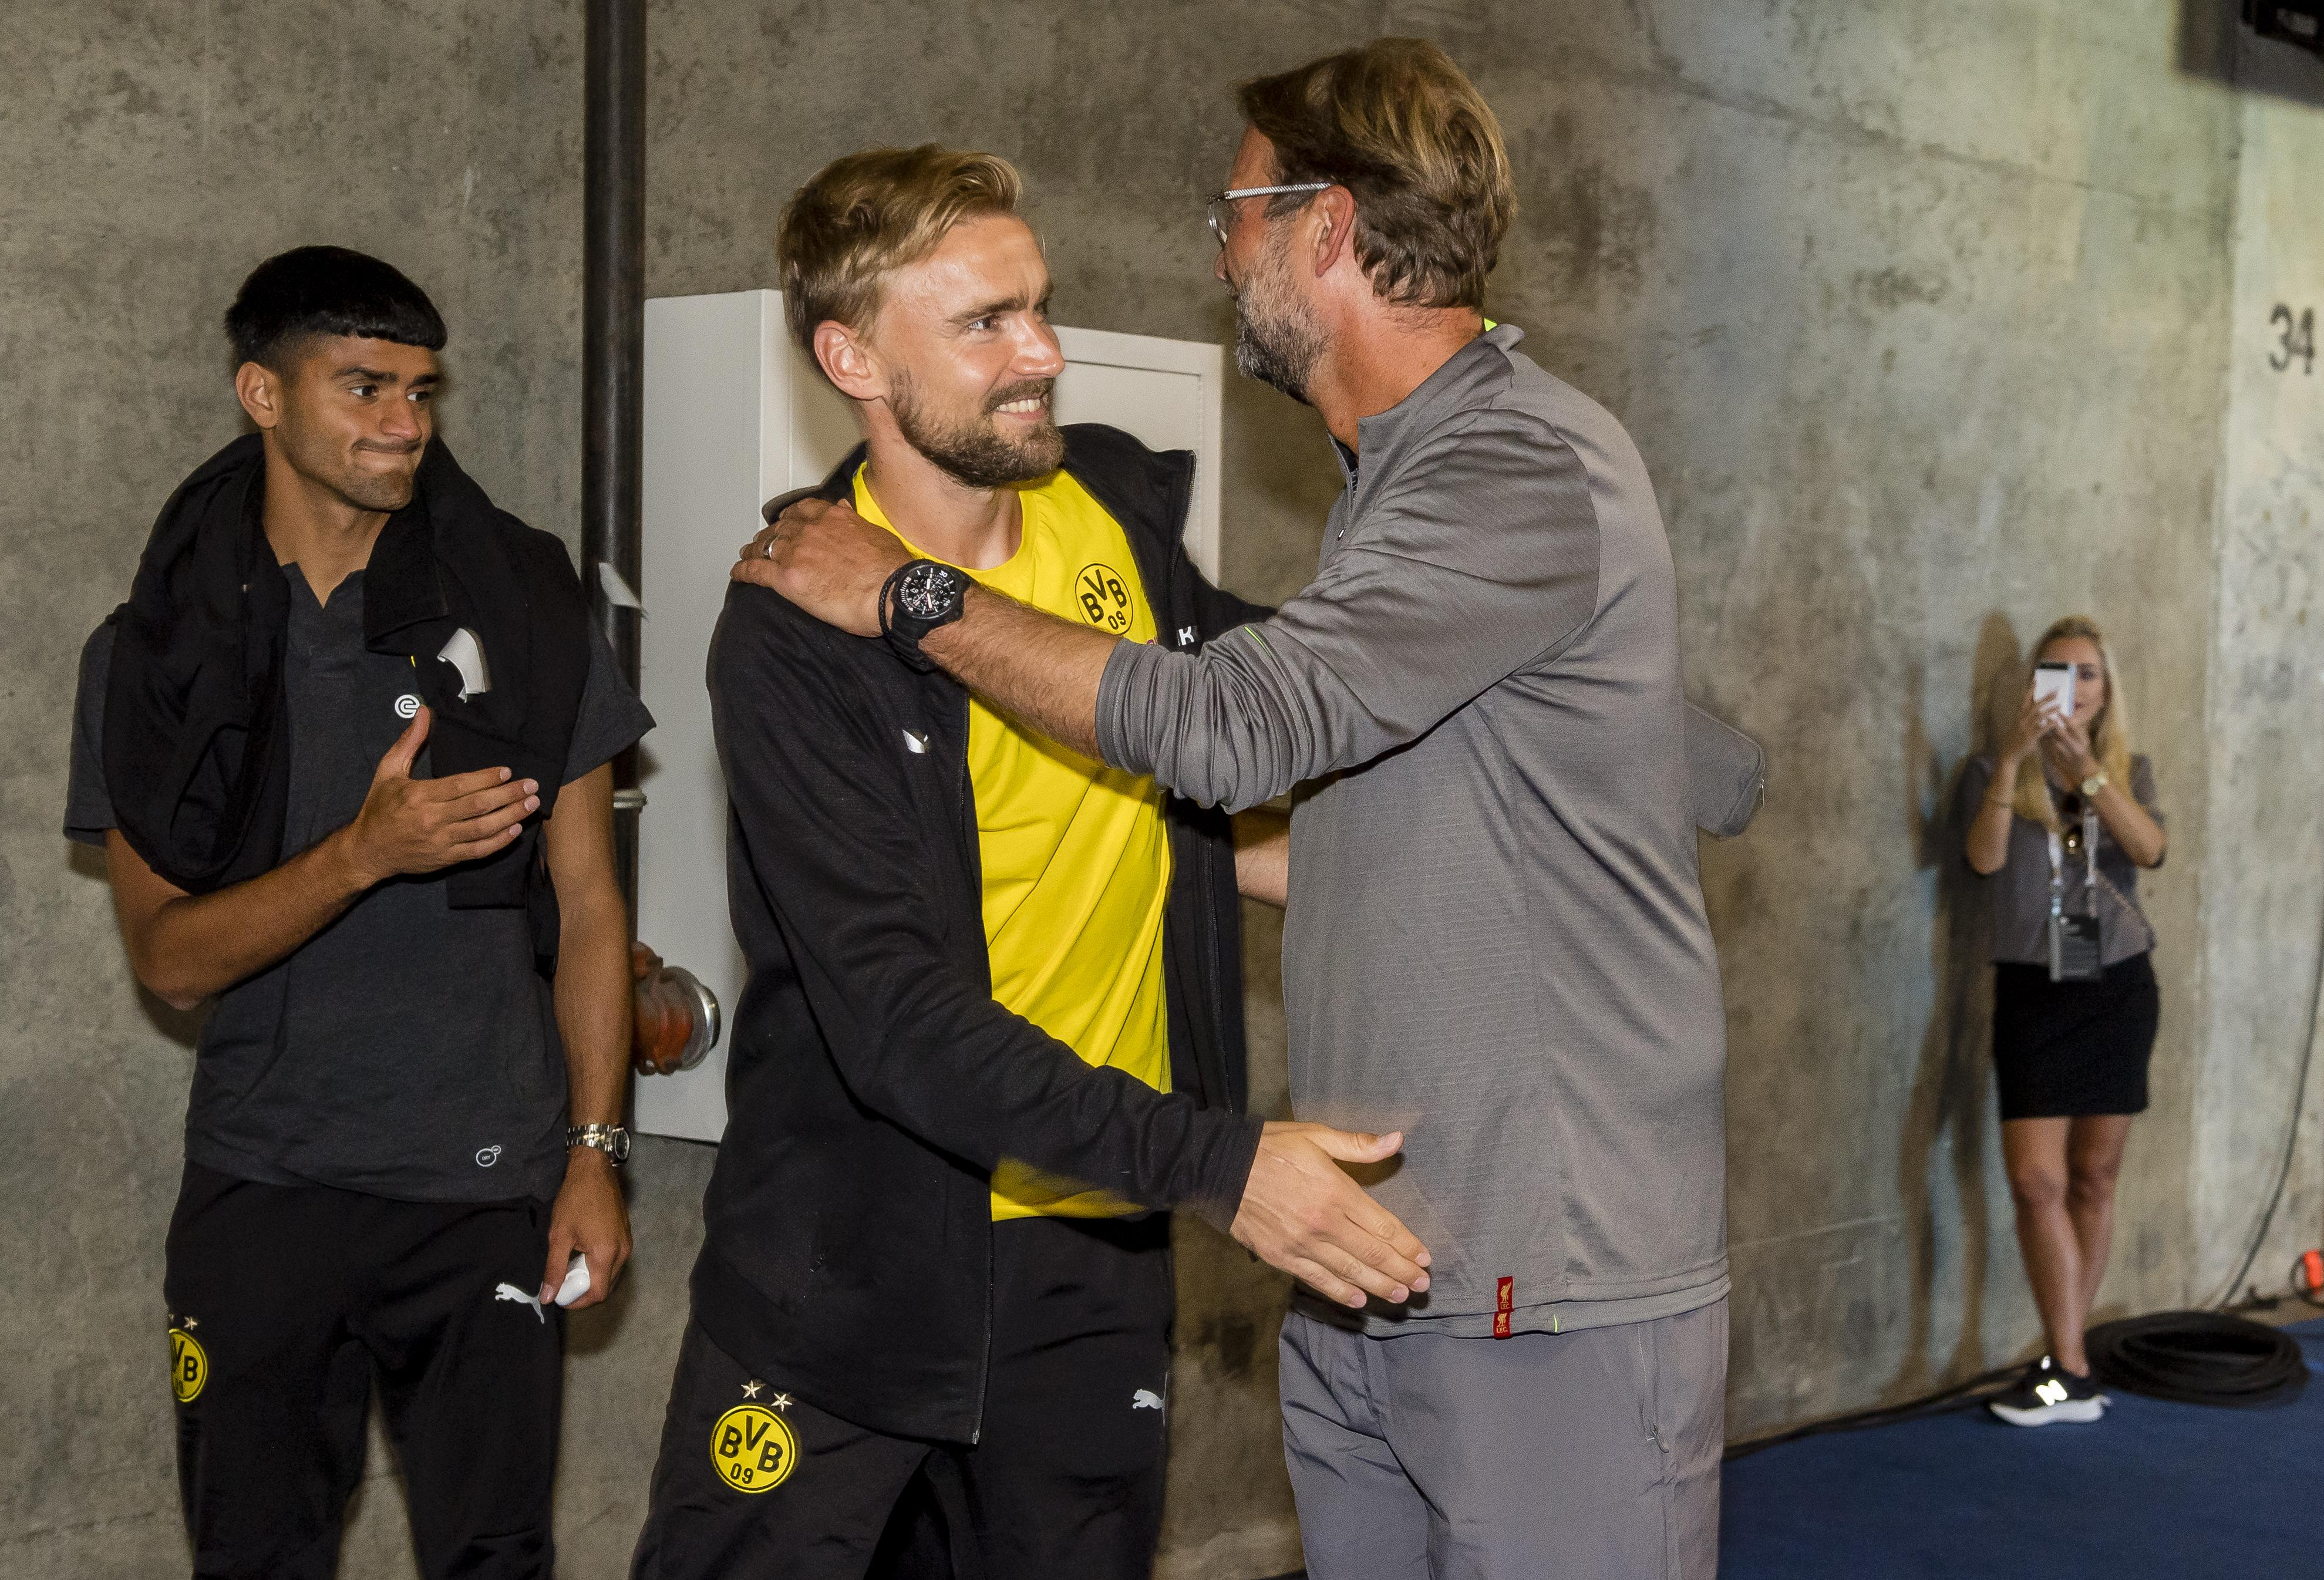 Klopp met a number of his former charges, including Marcel Schmelzer, when Liverpool took on Borussia Dortmund earlier this month